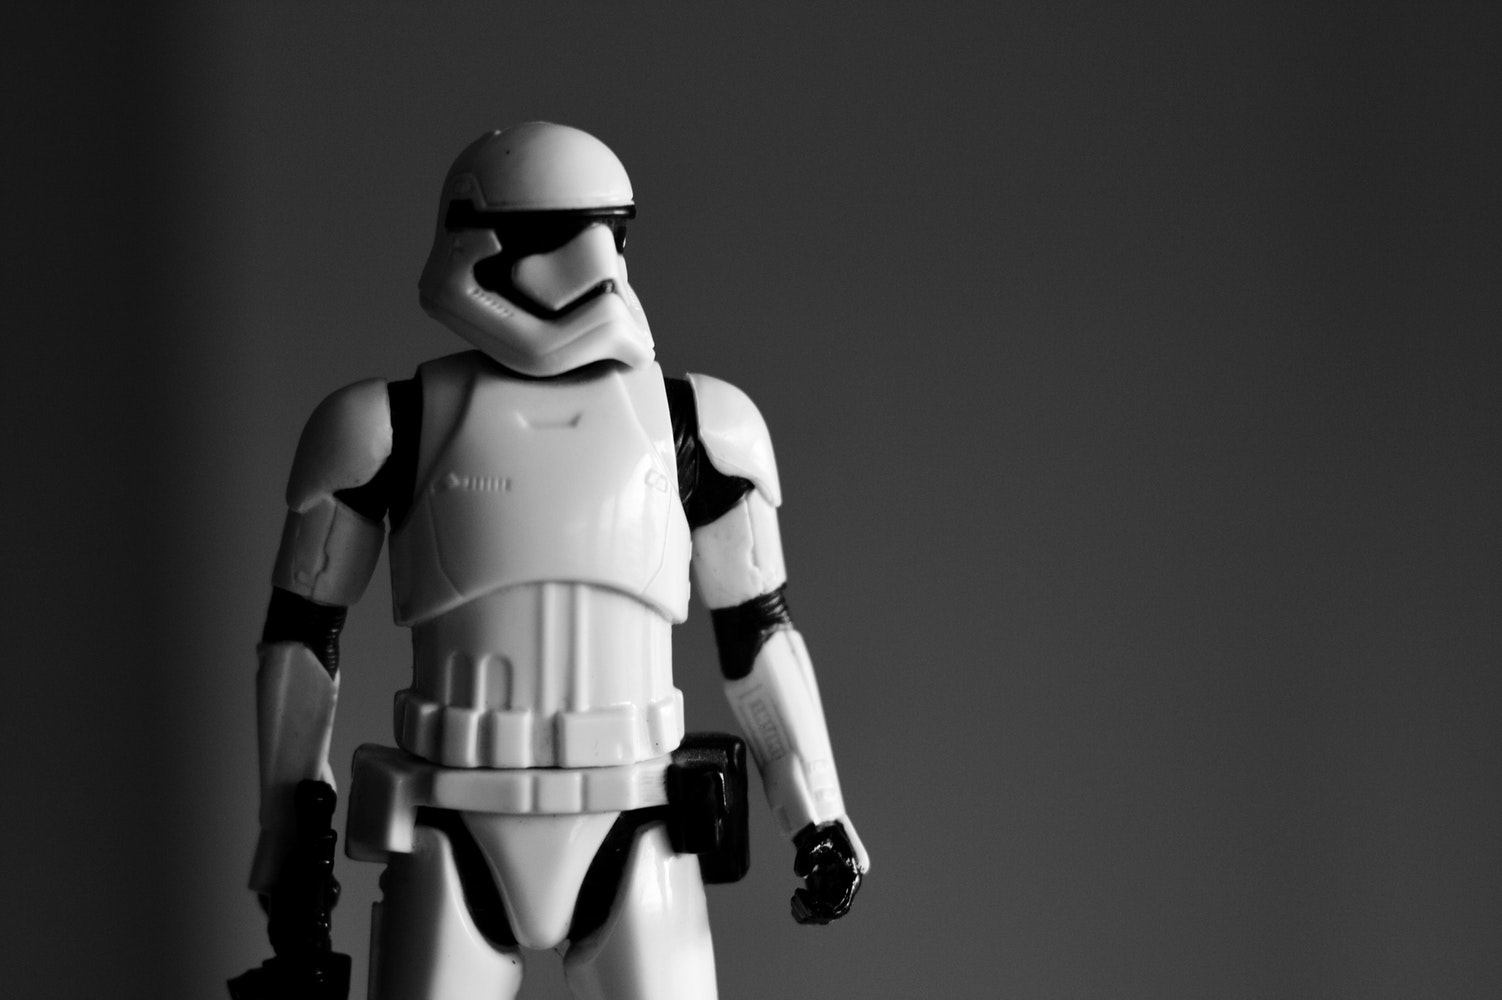 Storm trooper action figure in grey background. Storm troopers are characters from star wars universe.